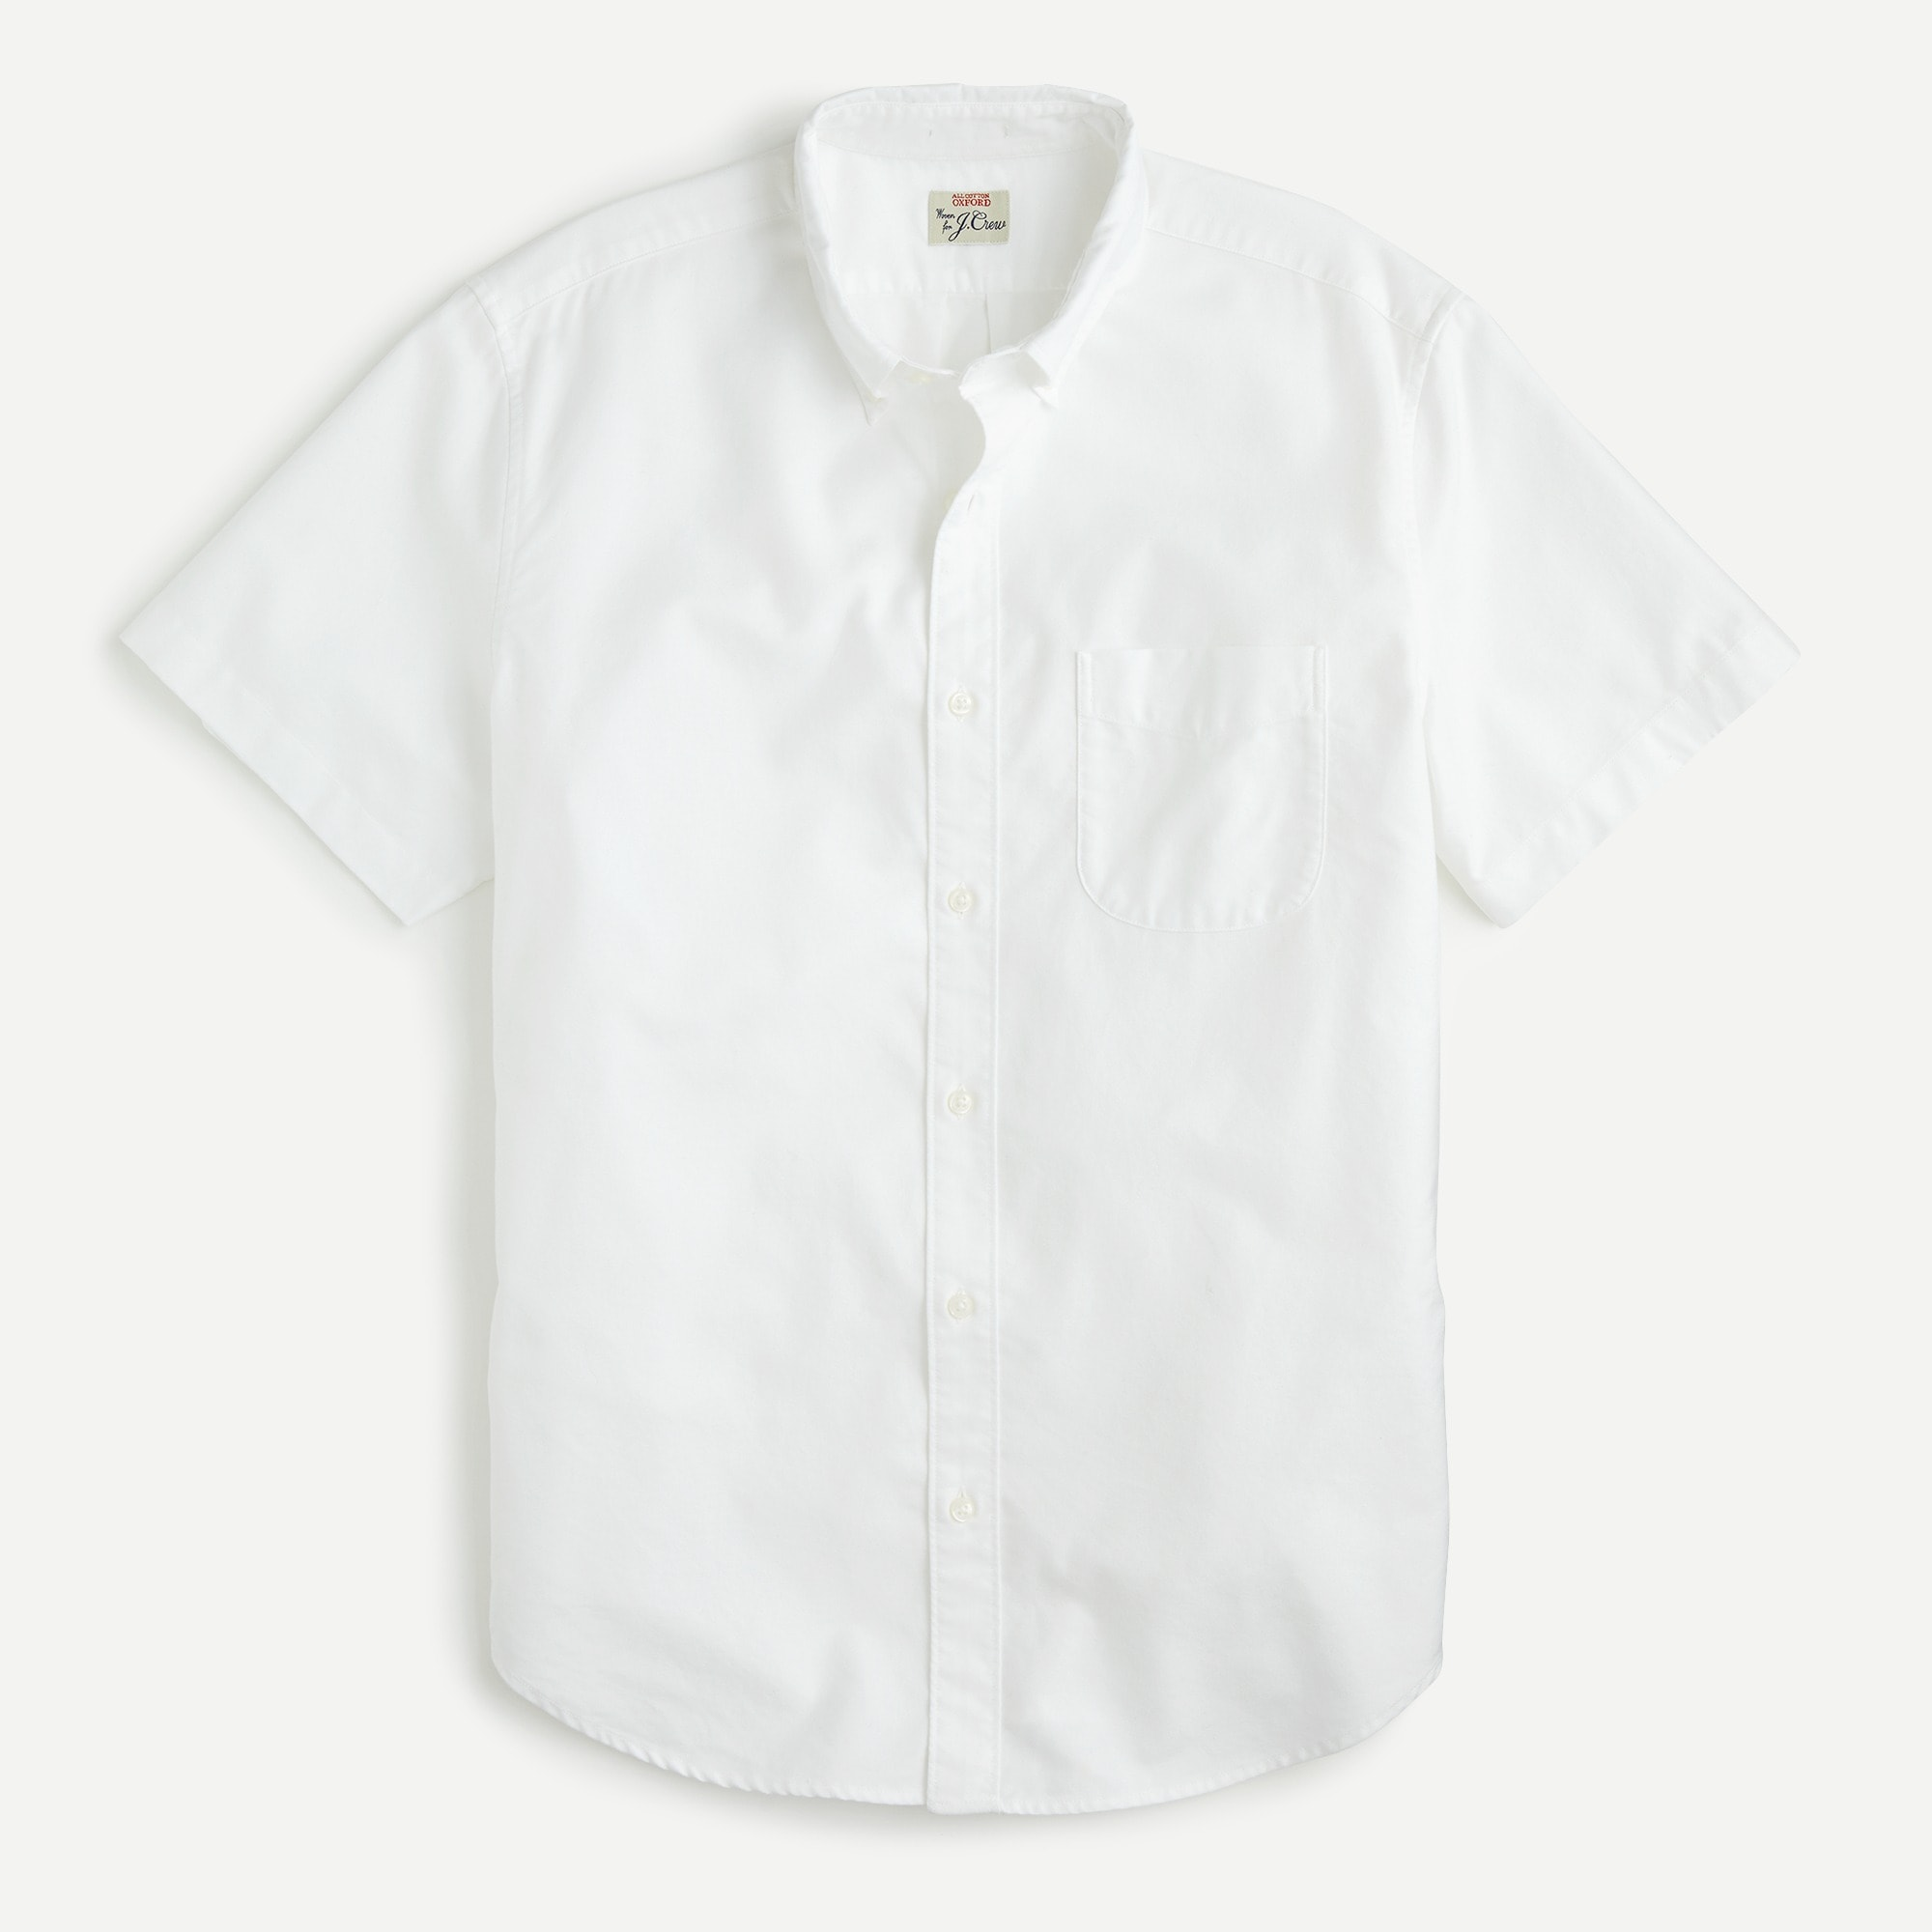 mens Stretch short-sleeve American Pima cotton oxford shirt